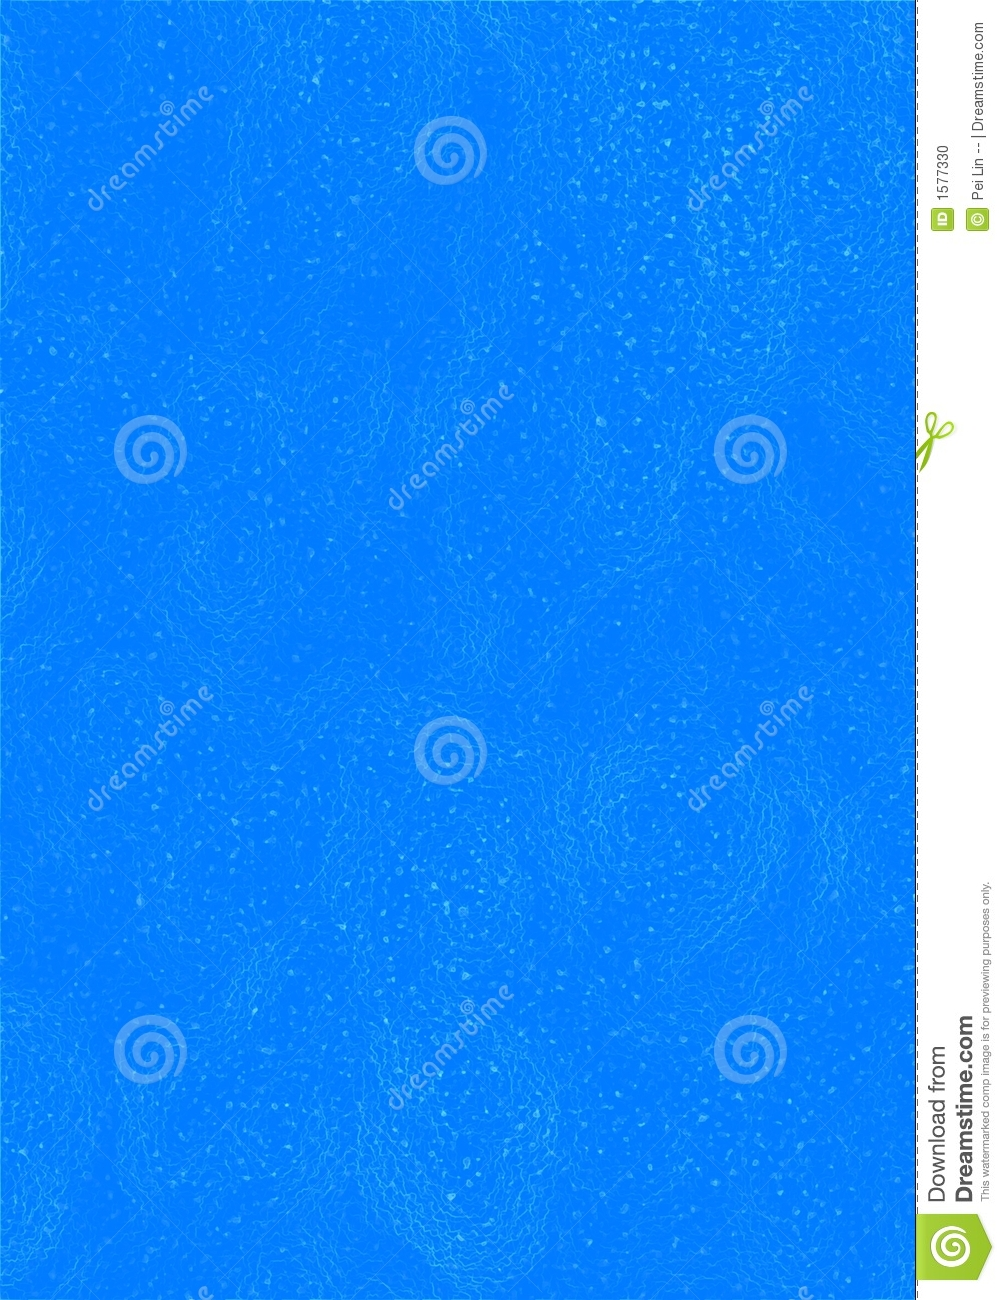 simple blue background design - photo #23